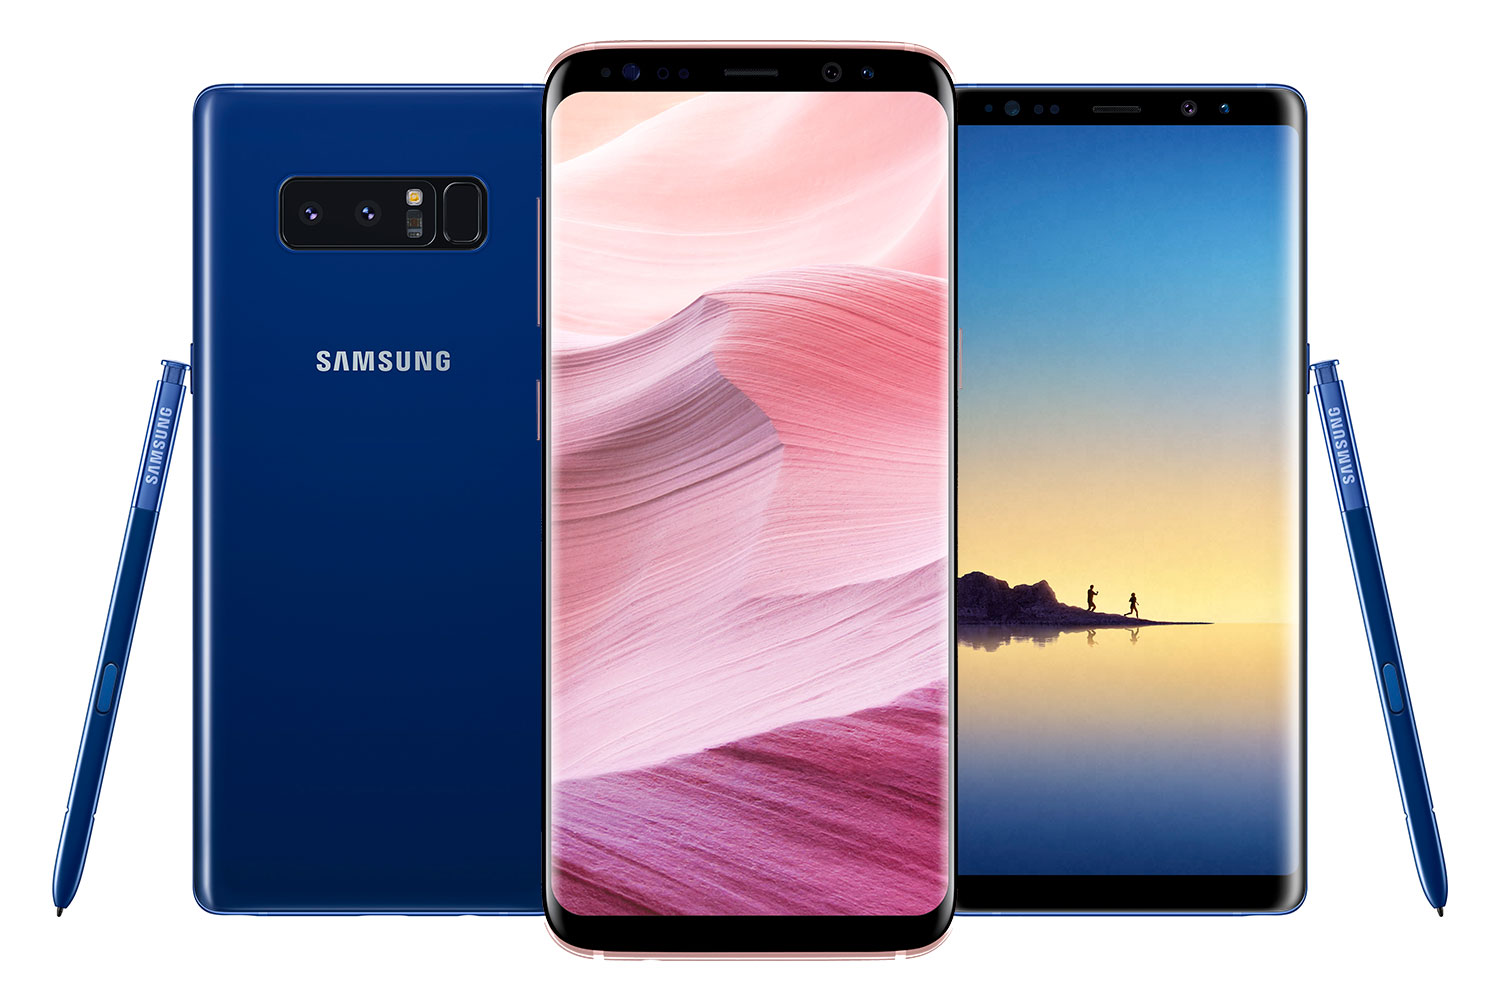 Samsung Galaxy Note 8 and Galaxy S8